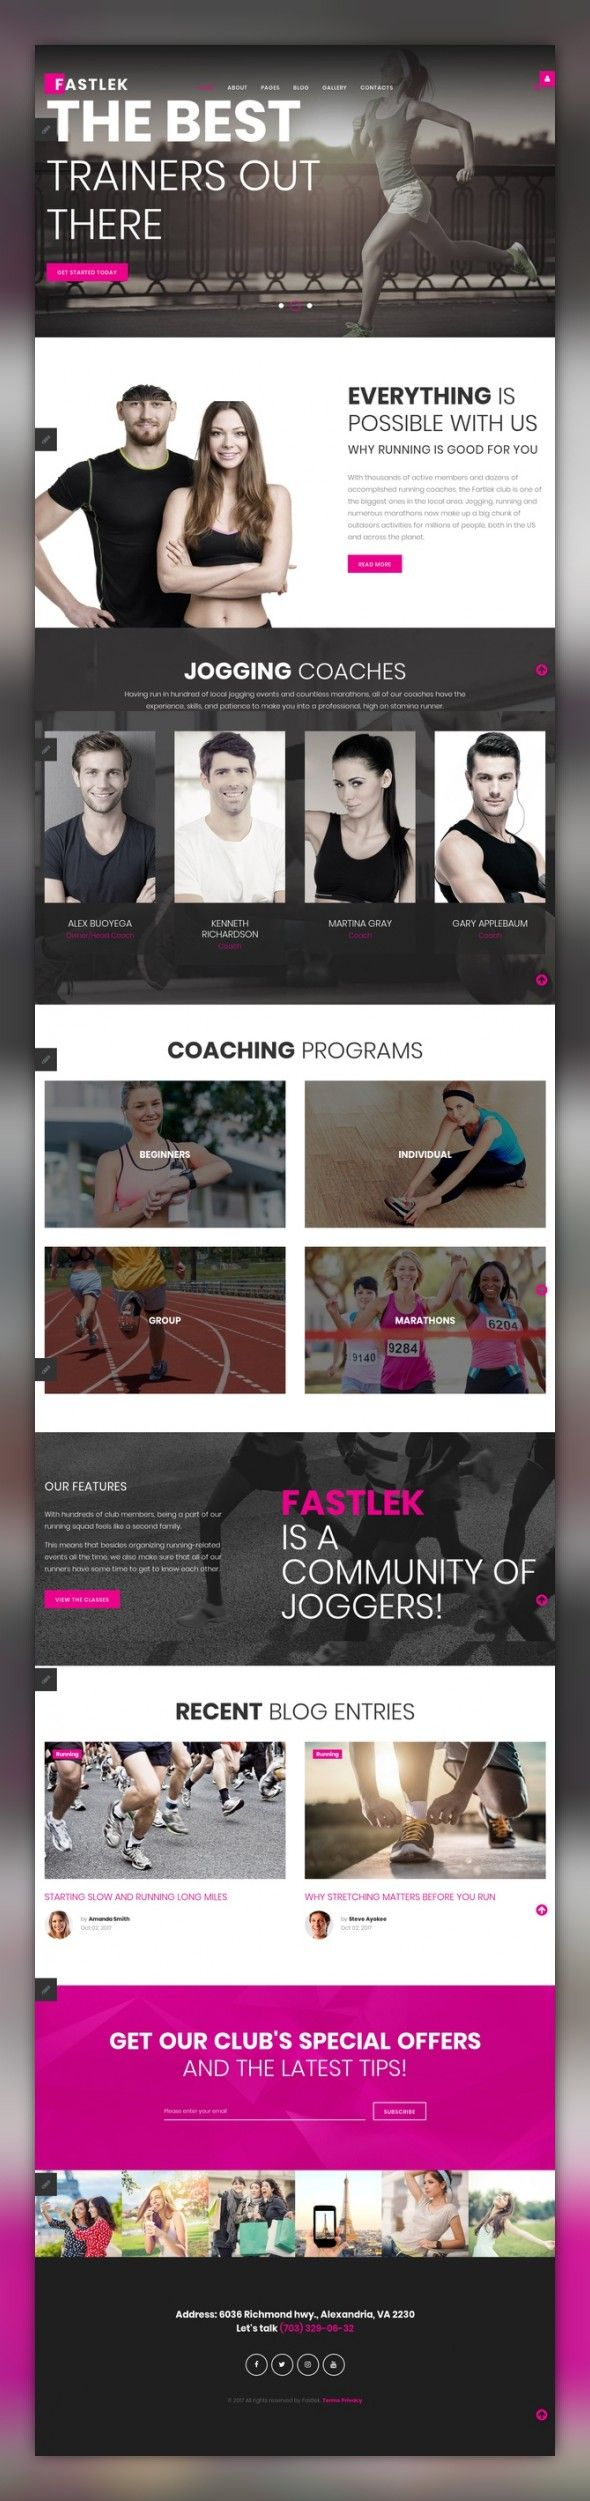 Running Responsive Joomla Template CMS & Blog Templates, Joomla Templates, Sports, Outdoors & Travel, Sport Templates, More Sports Running Responsive Joomla Template. Additional features, comprehensive documentation and stock photos are included.